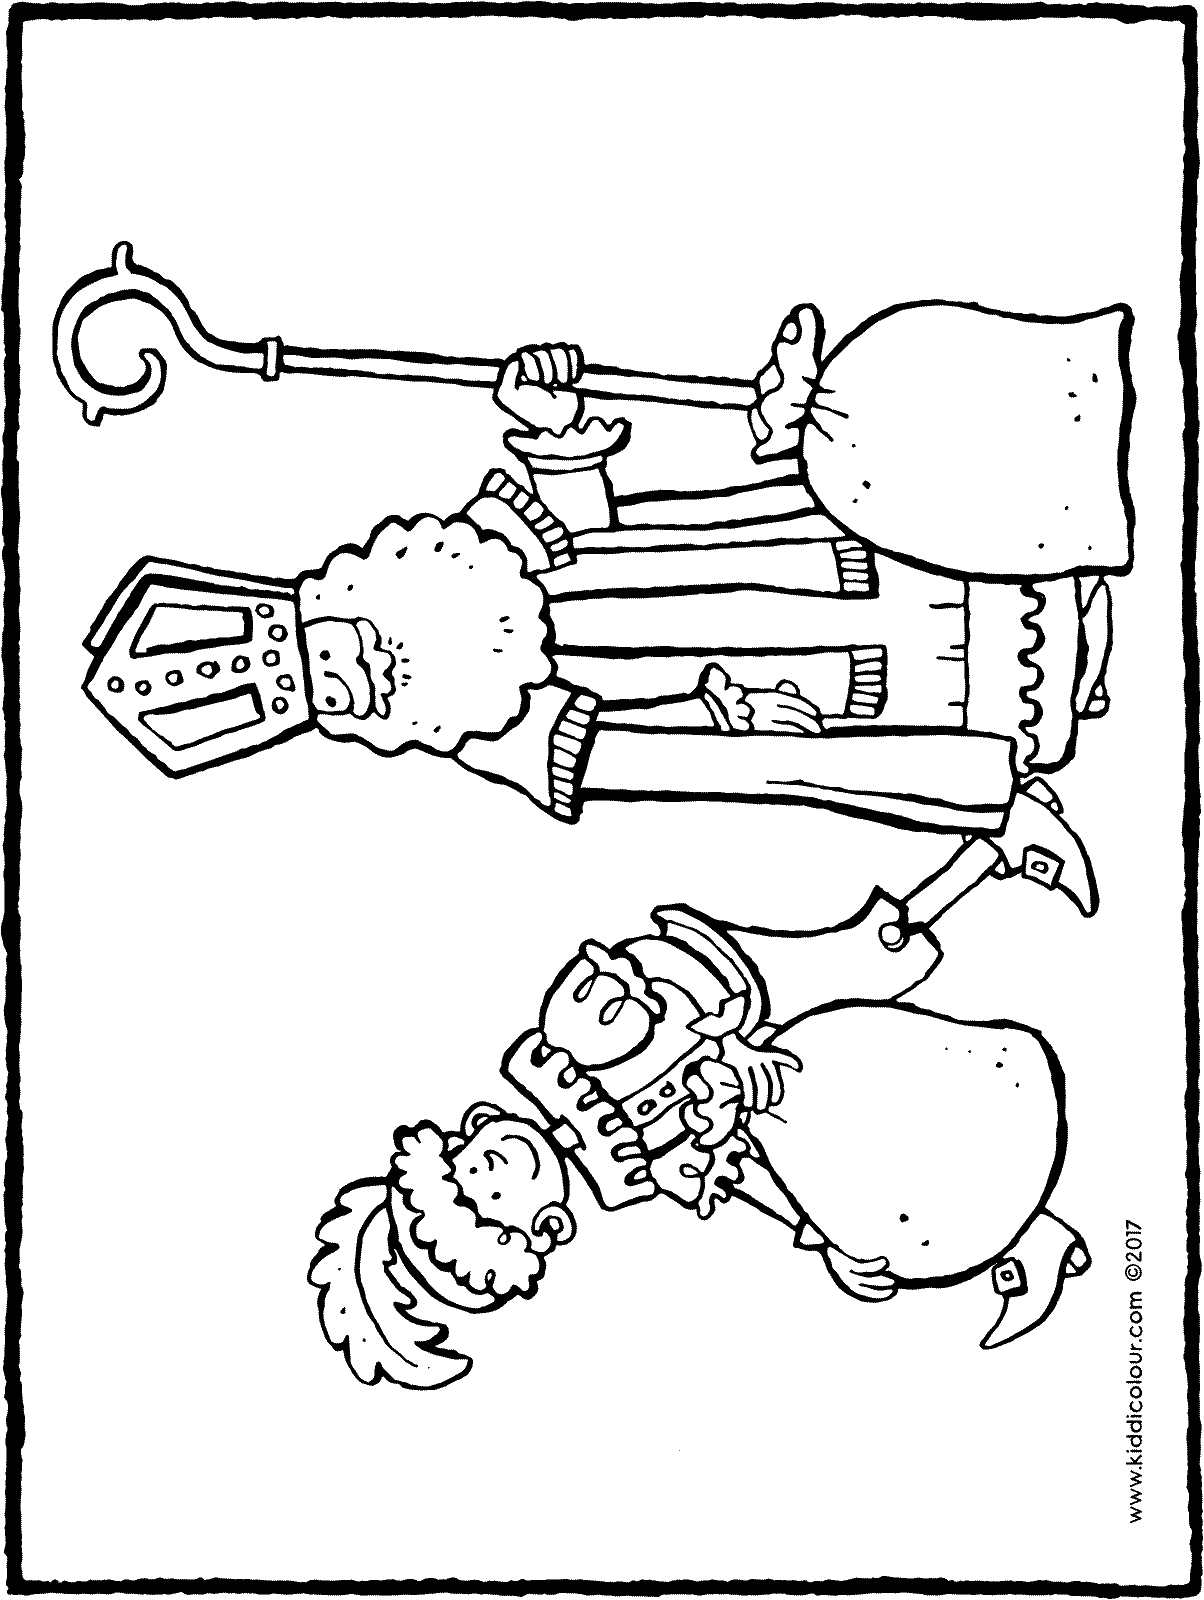 Saint Nicholas and Black Pete colouring page page drawing picture 02H